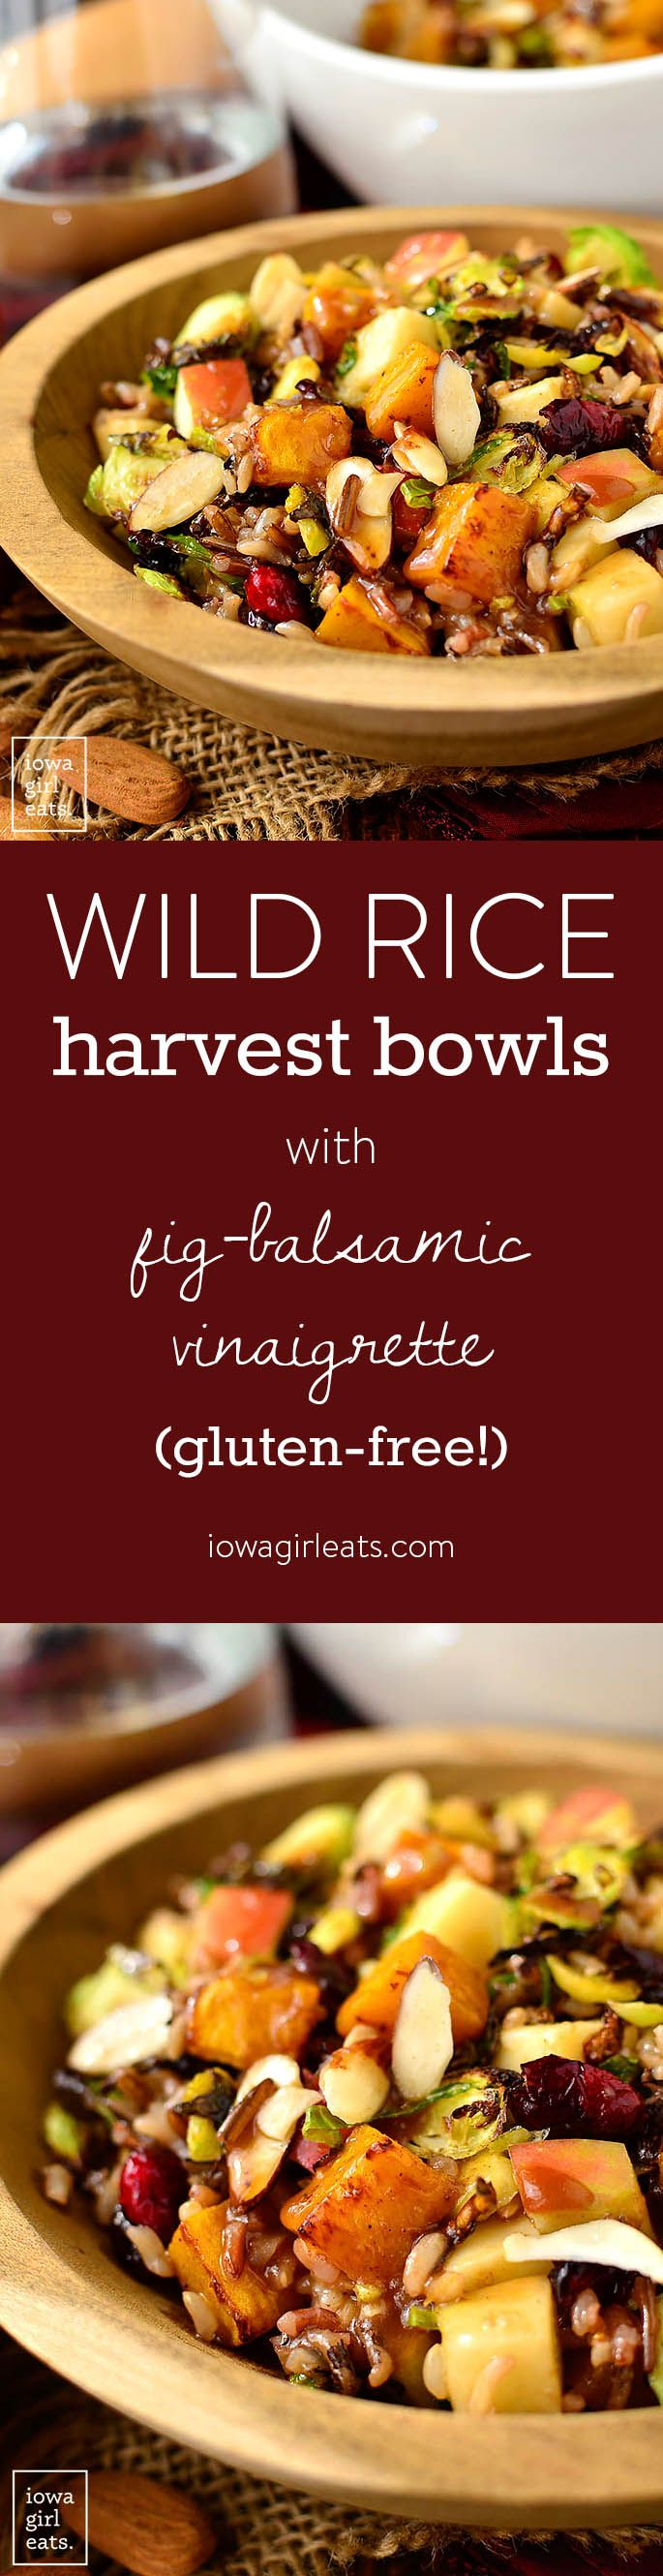 Wild Rice Harvest Bowls with Fig Balsamic Vinaigrette are full of healthy, fall-inspired ingredients. Make a big batch then enjoy for lunch all week long!   iowagirleats.com